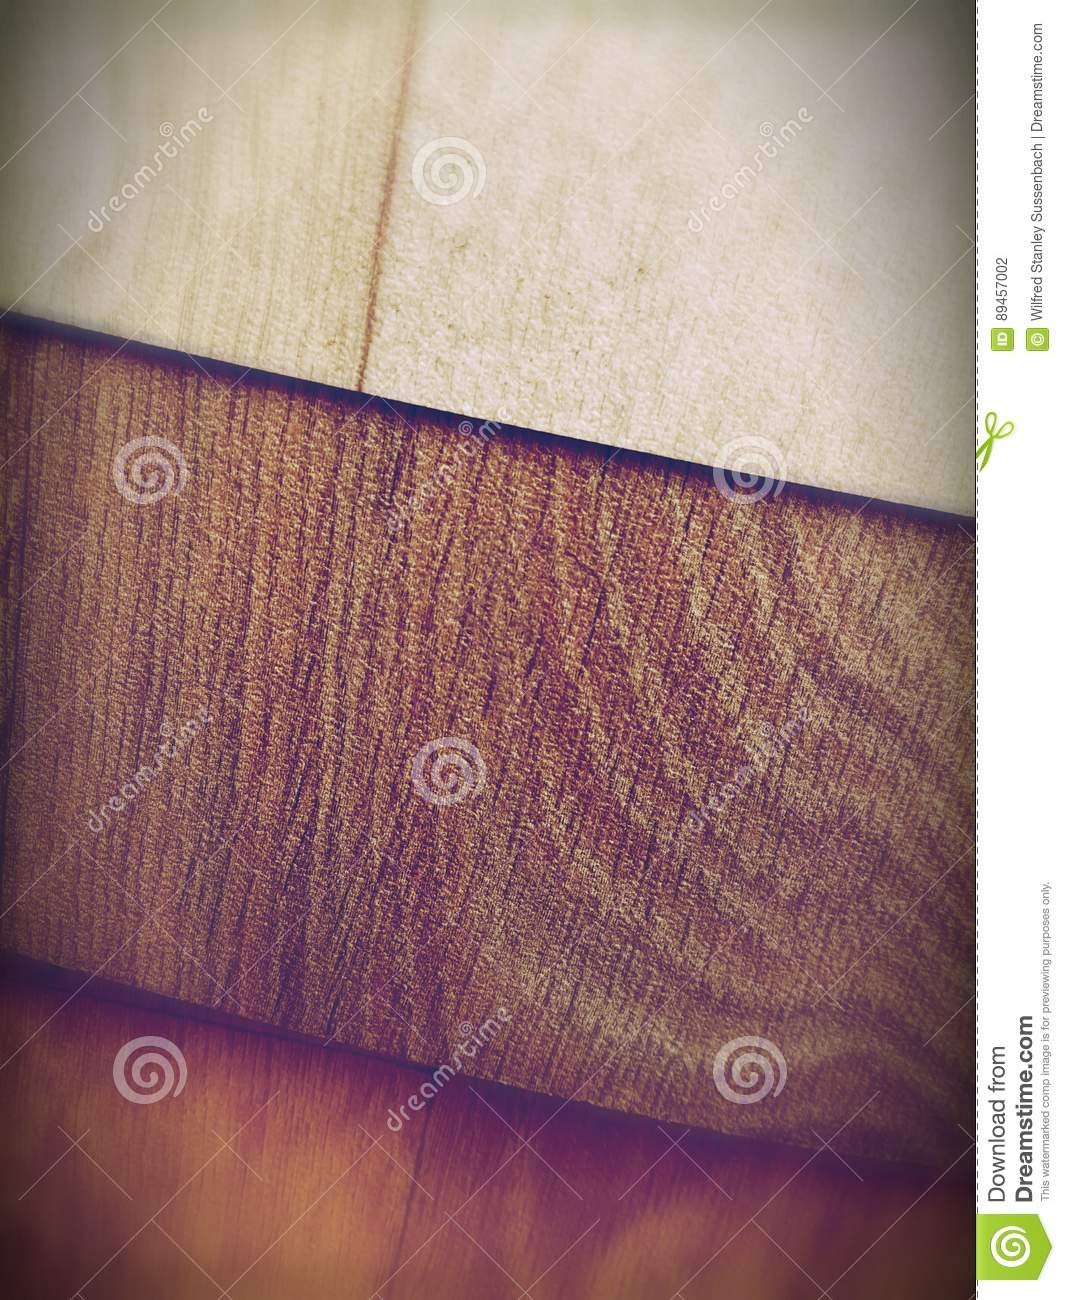 Different carpet samples stock photo. Image of textures